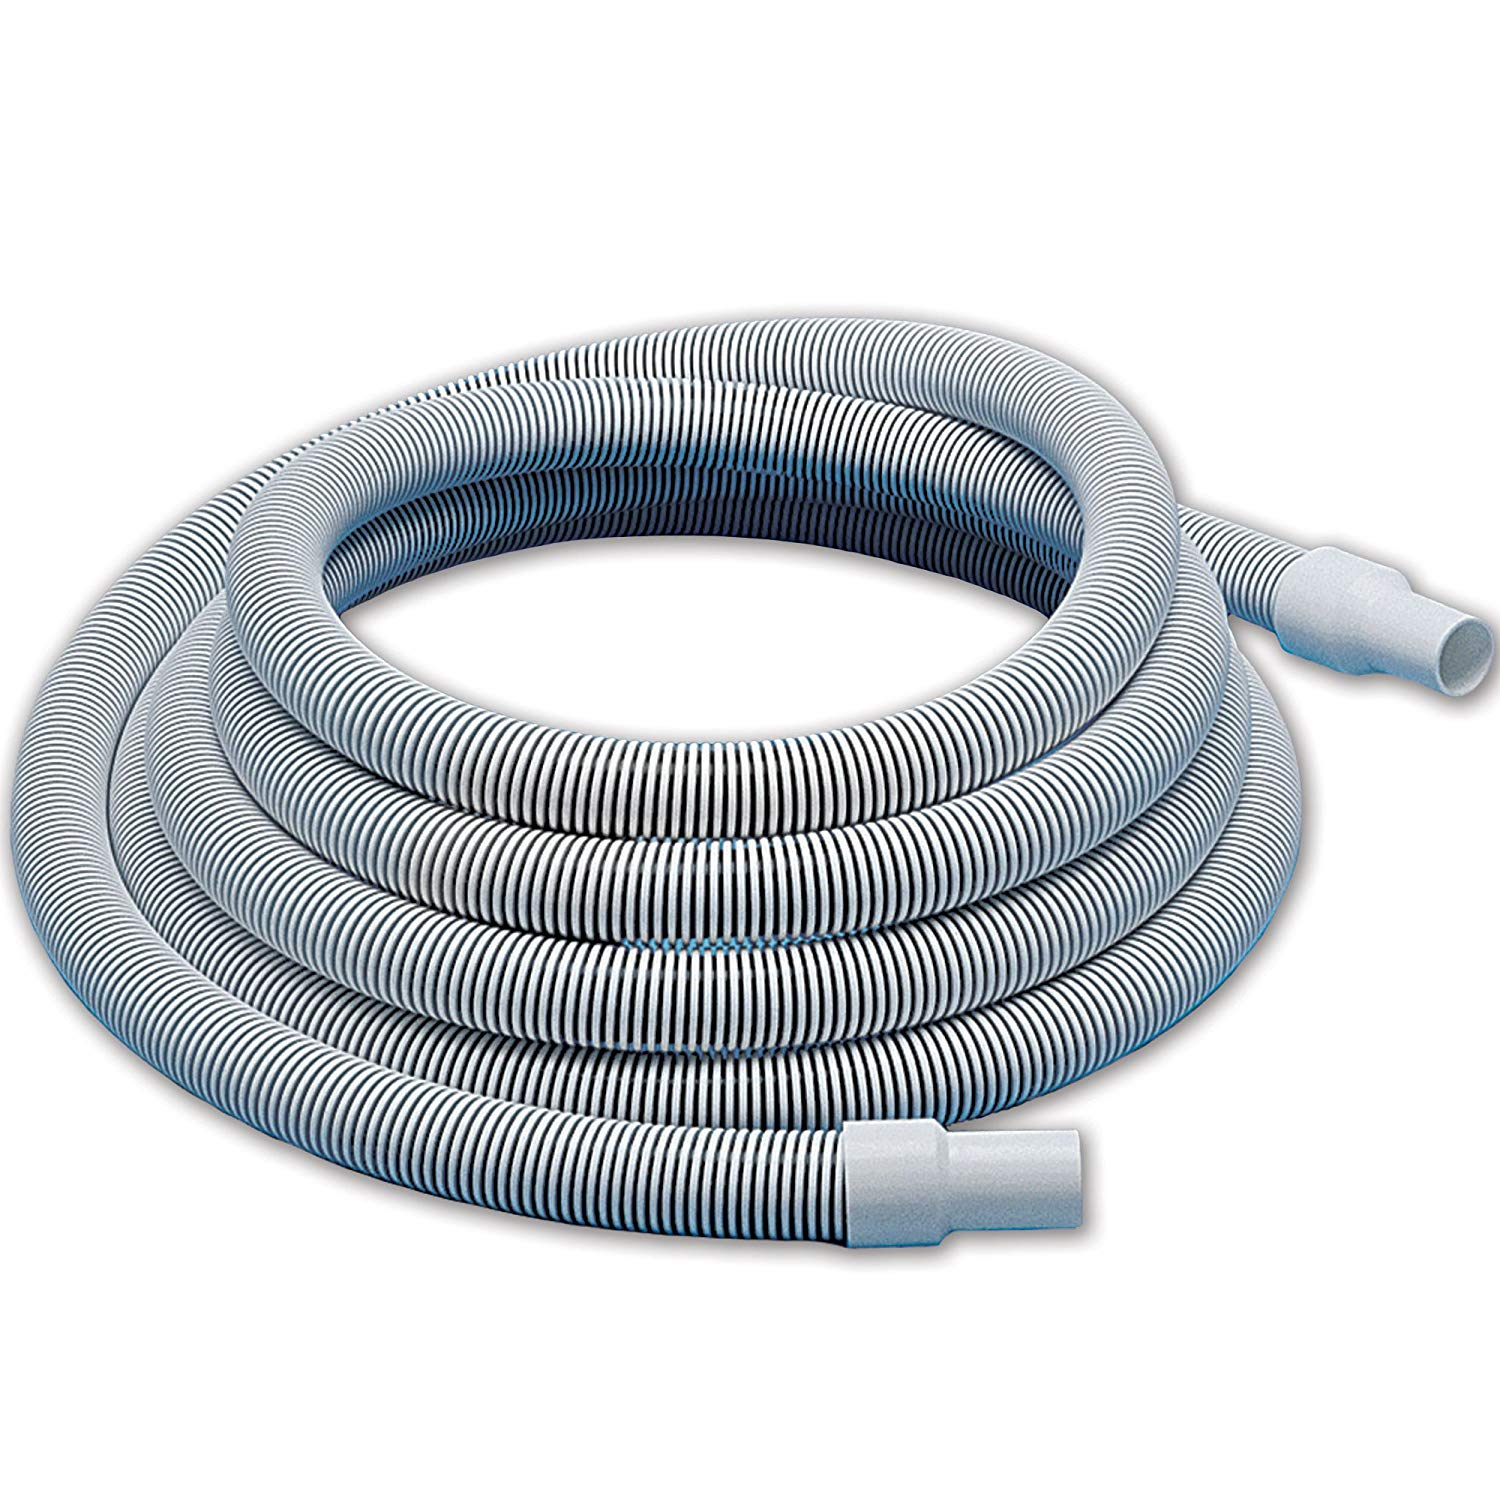 6-Feet by 1-1//2-Inch FloKing FK2006 Heavy-Duty Swimming Pool Filter Connector Hose